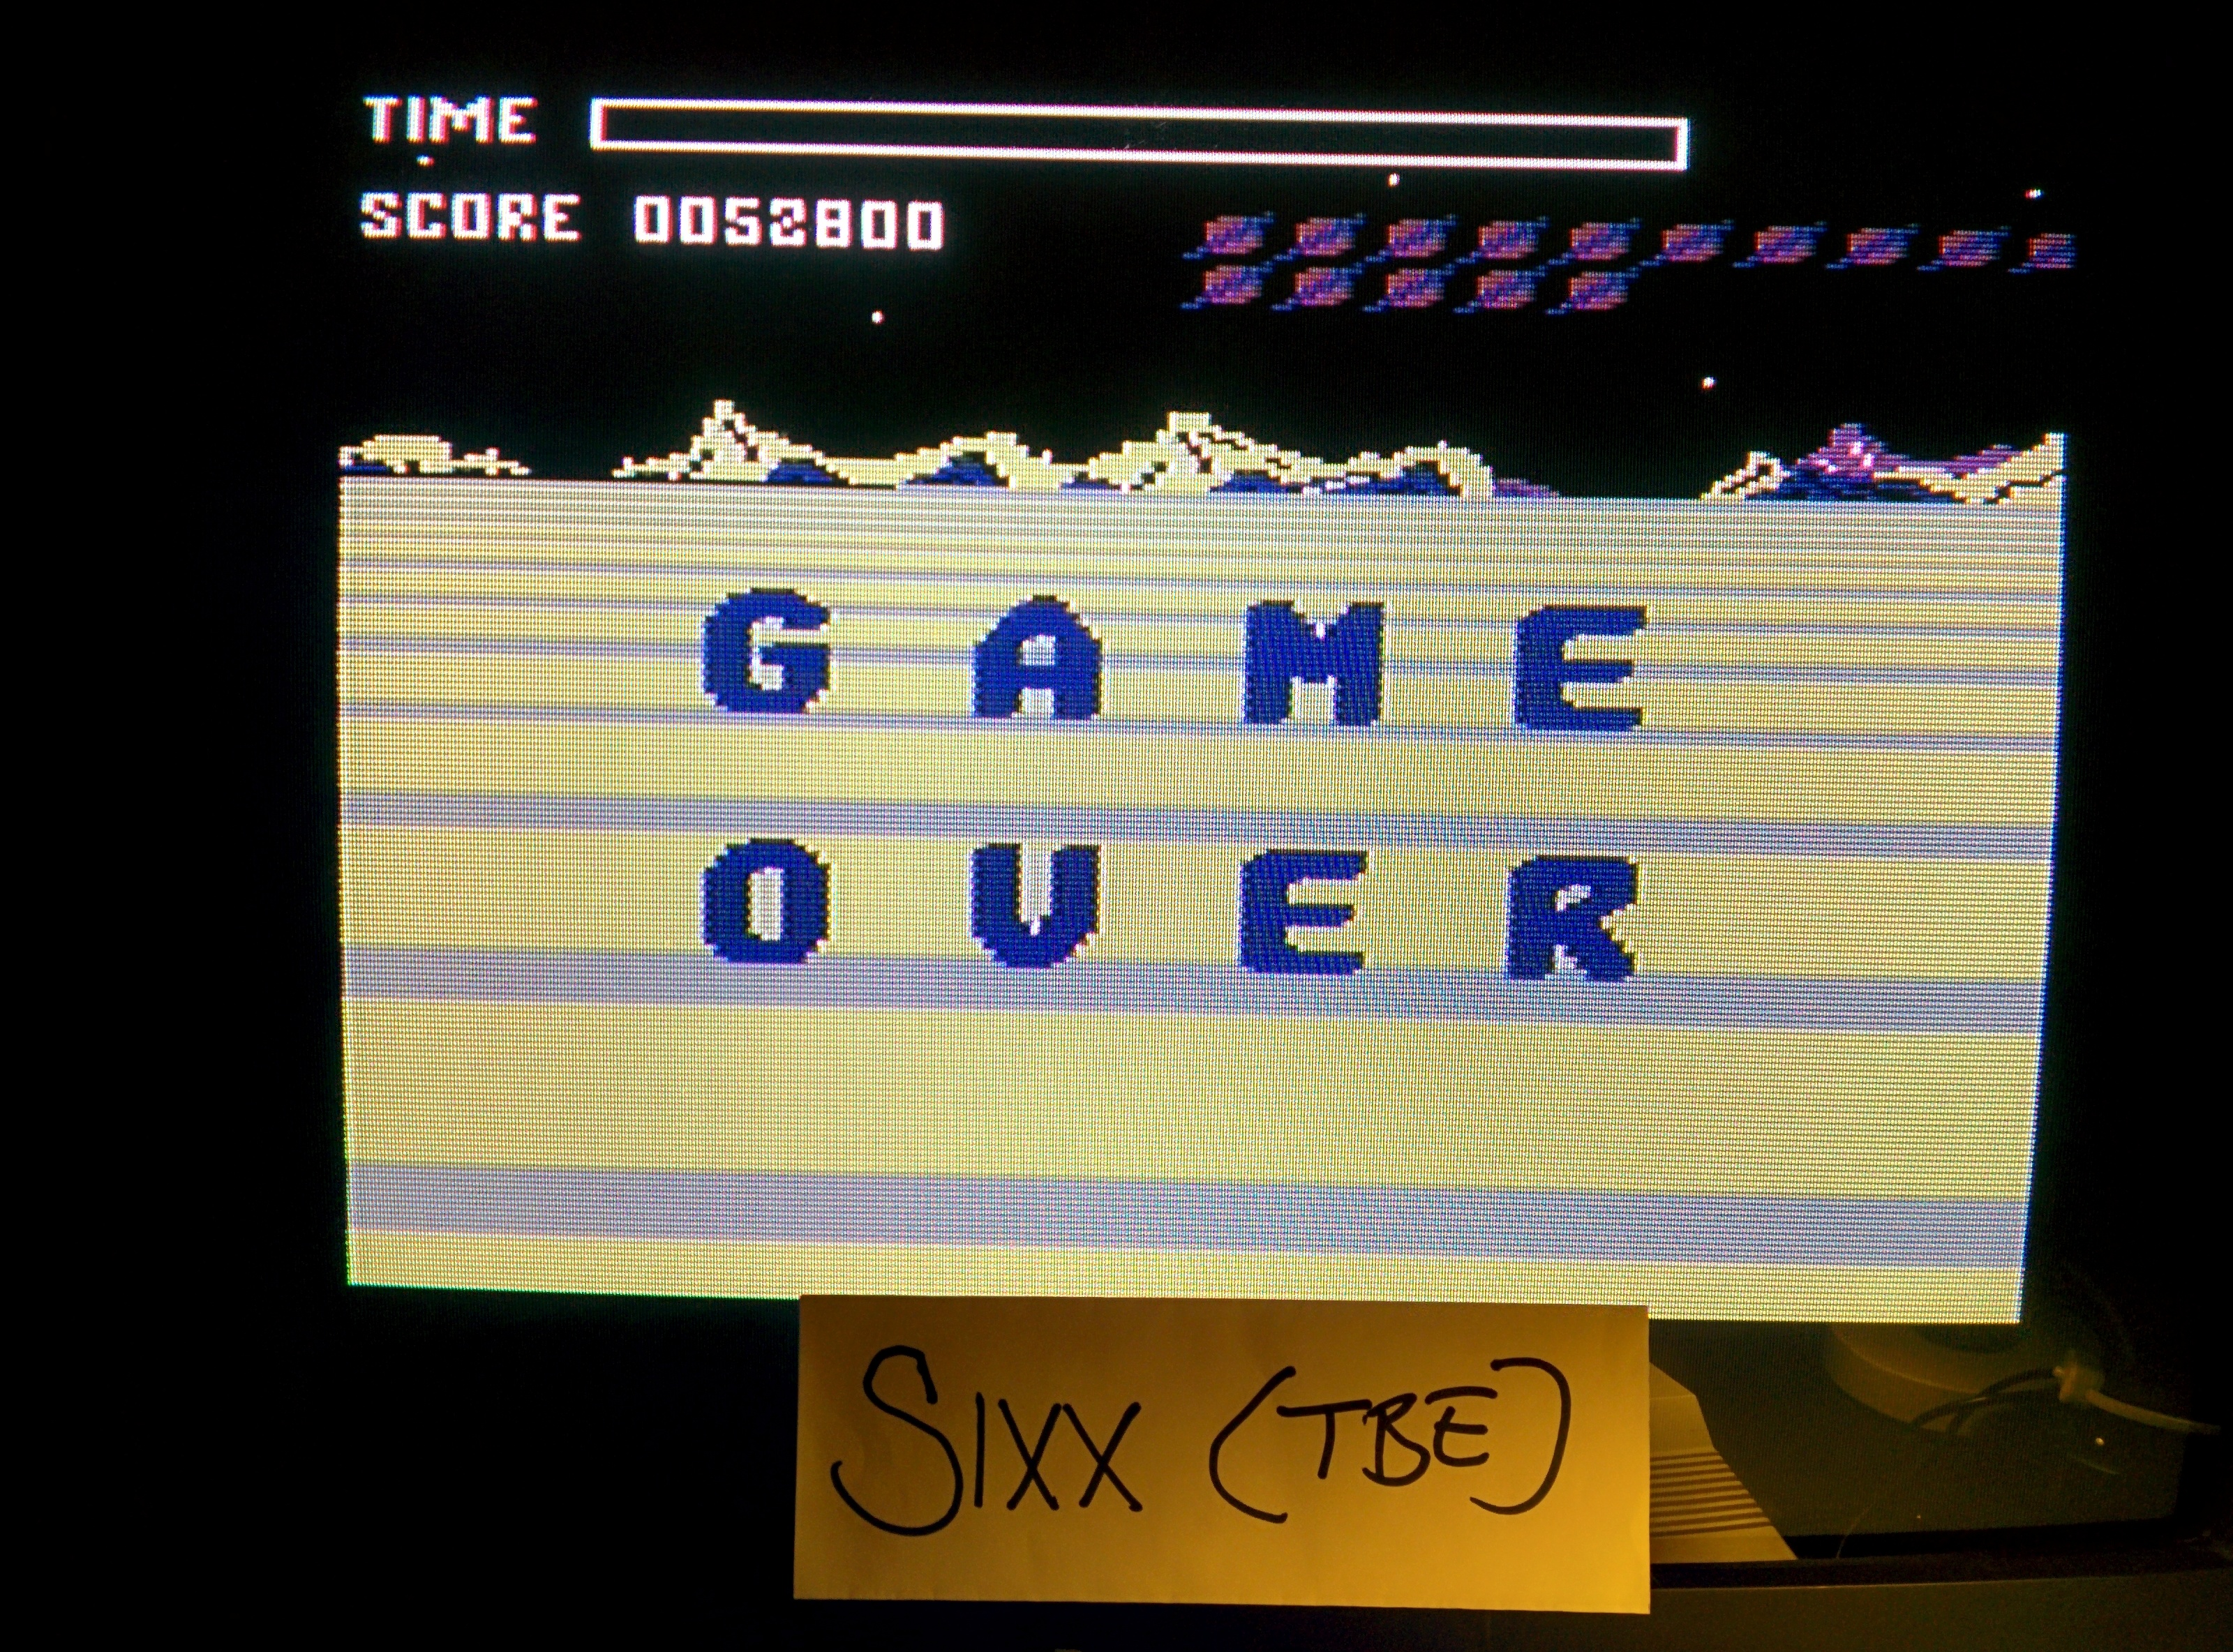 Sixx: Buck Rogers: Planet of Zoom (Commodore 64) 52,800 points on 2014-04-24 18:44:20